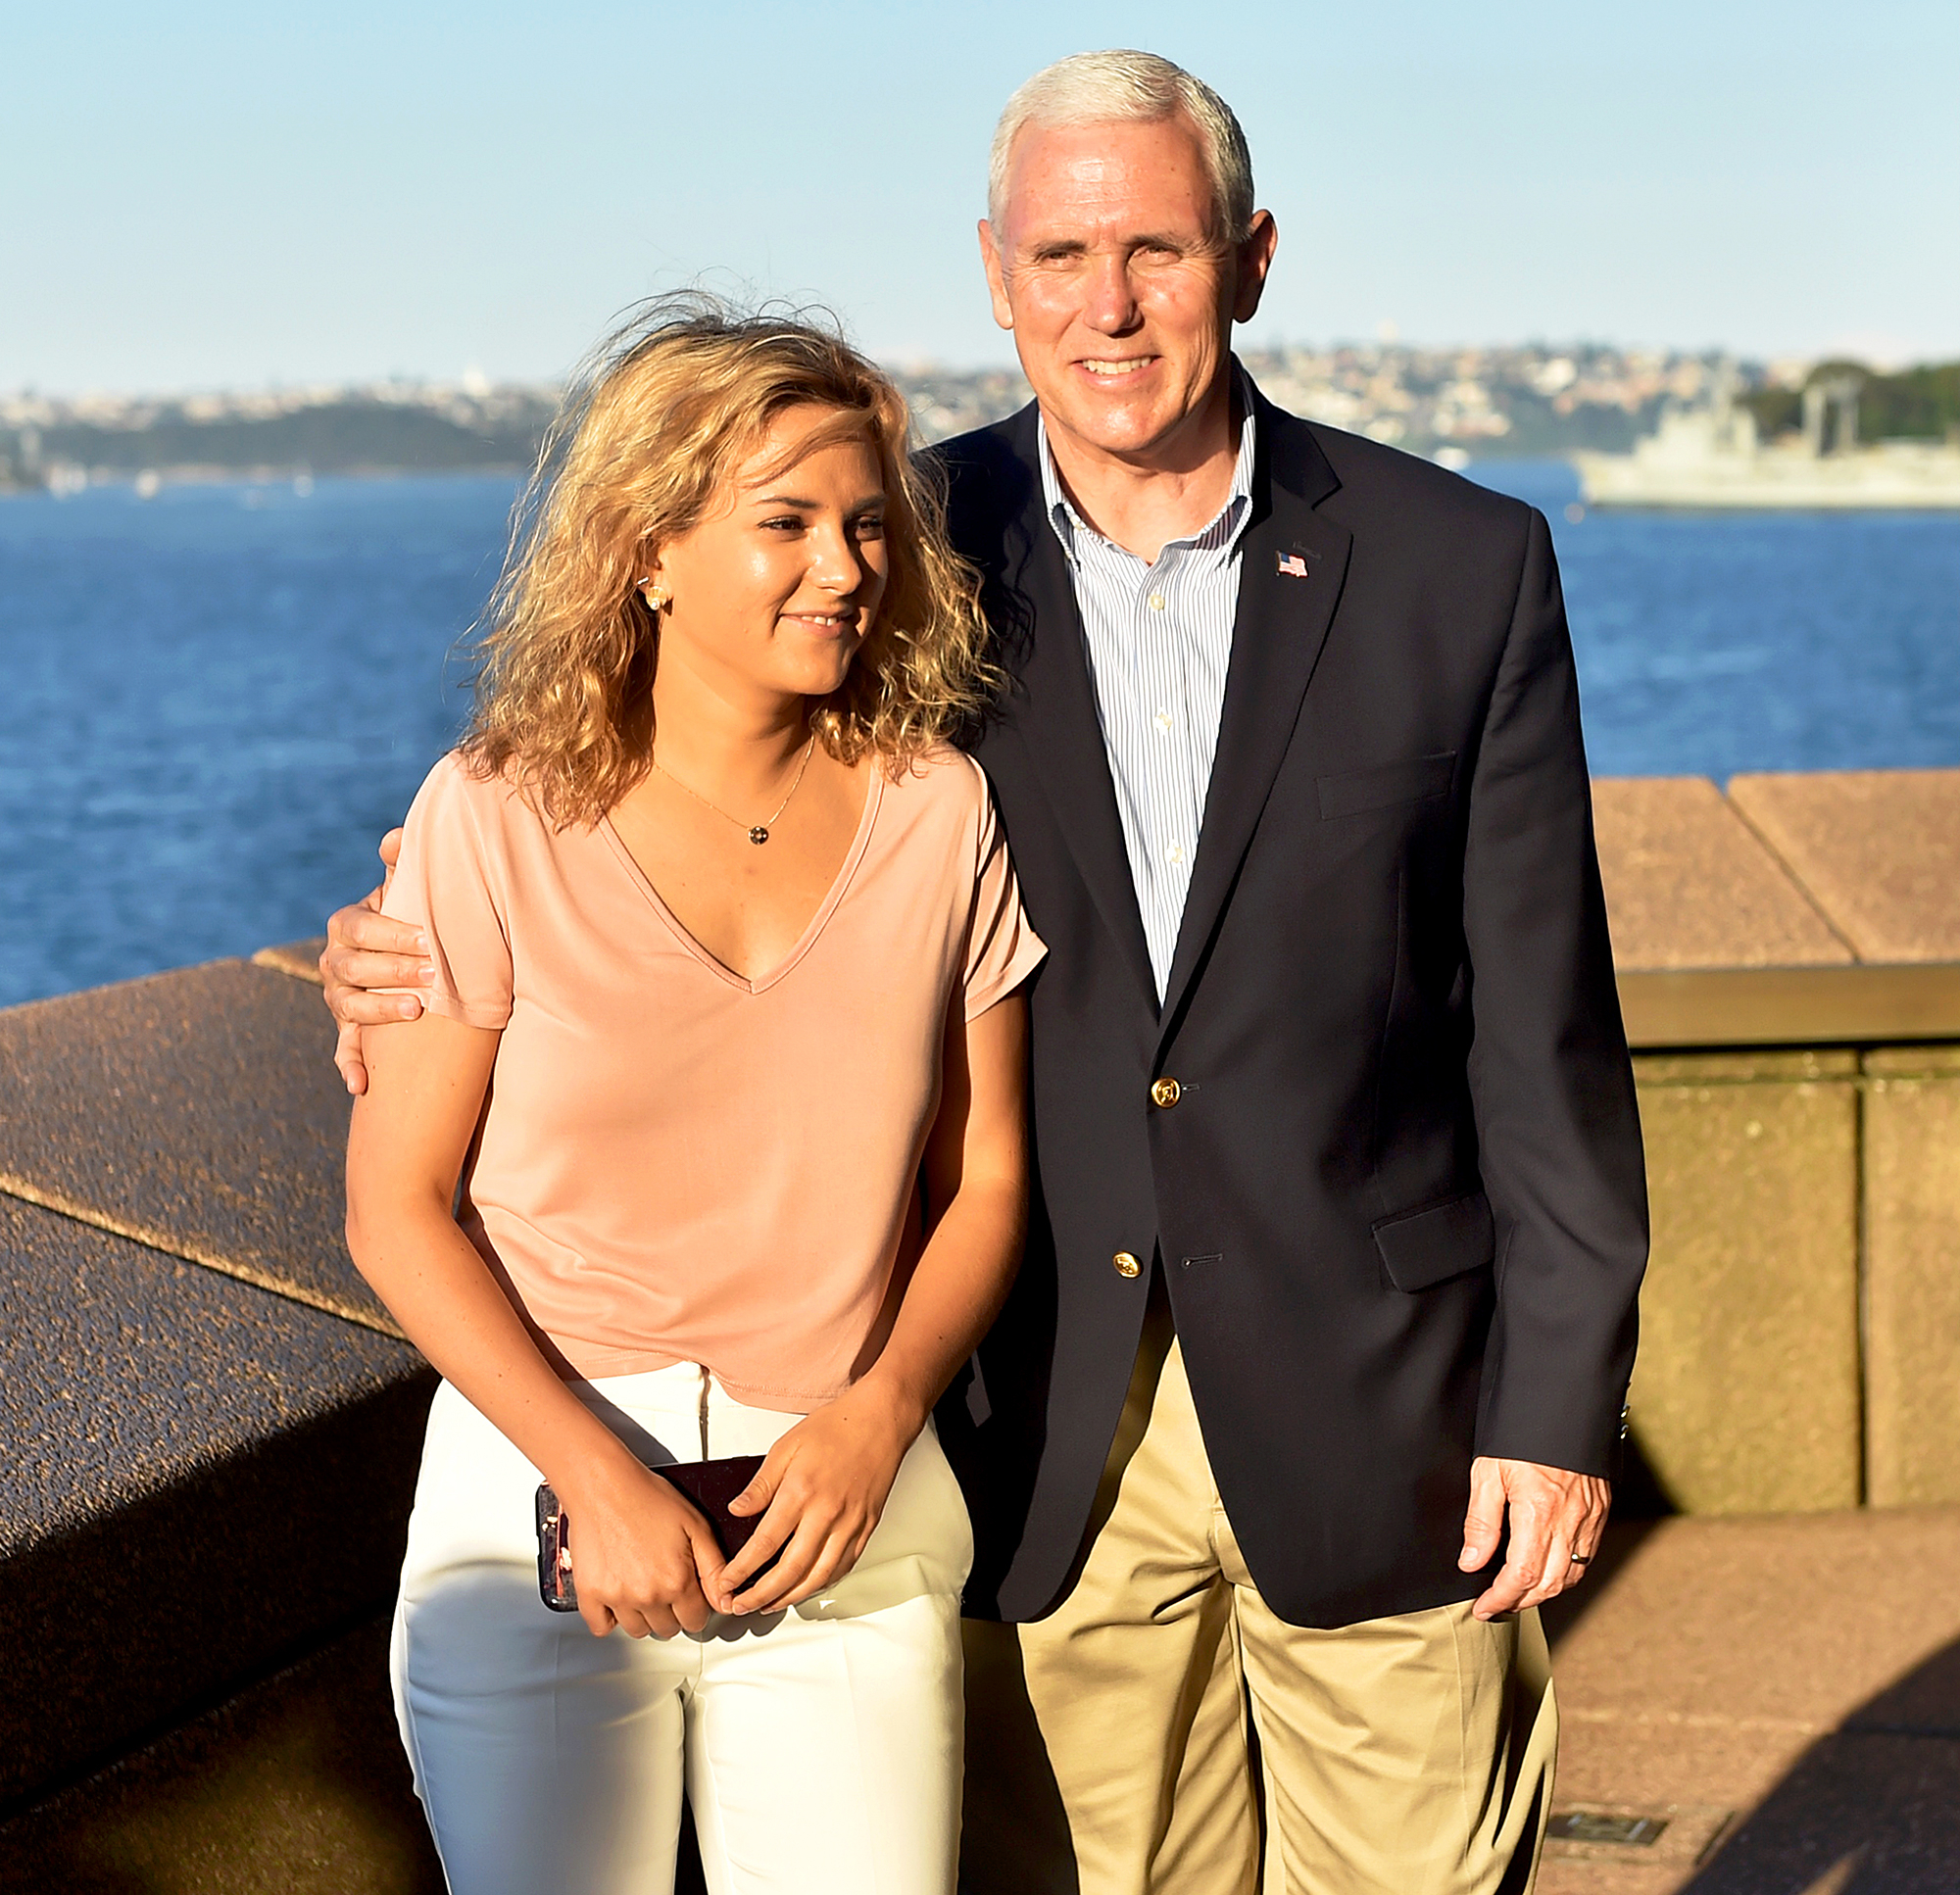 Mike Pence and Charlotte Pence